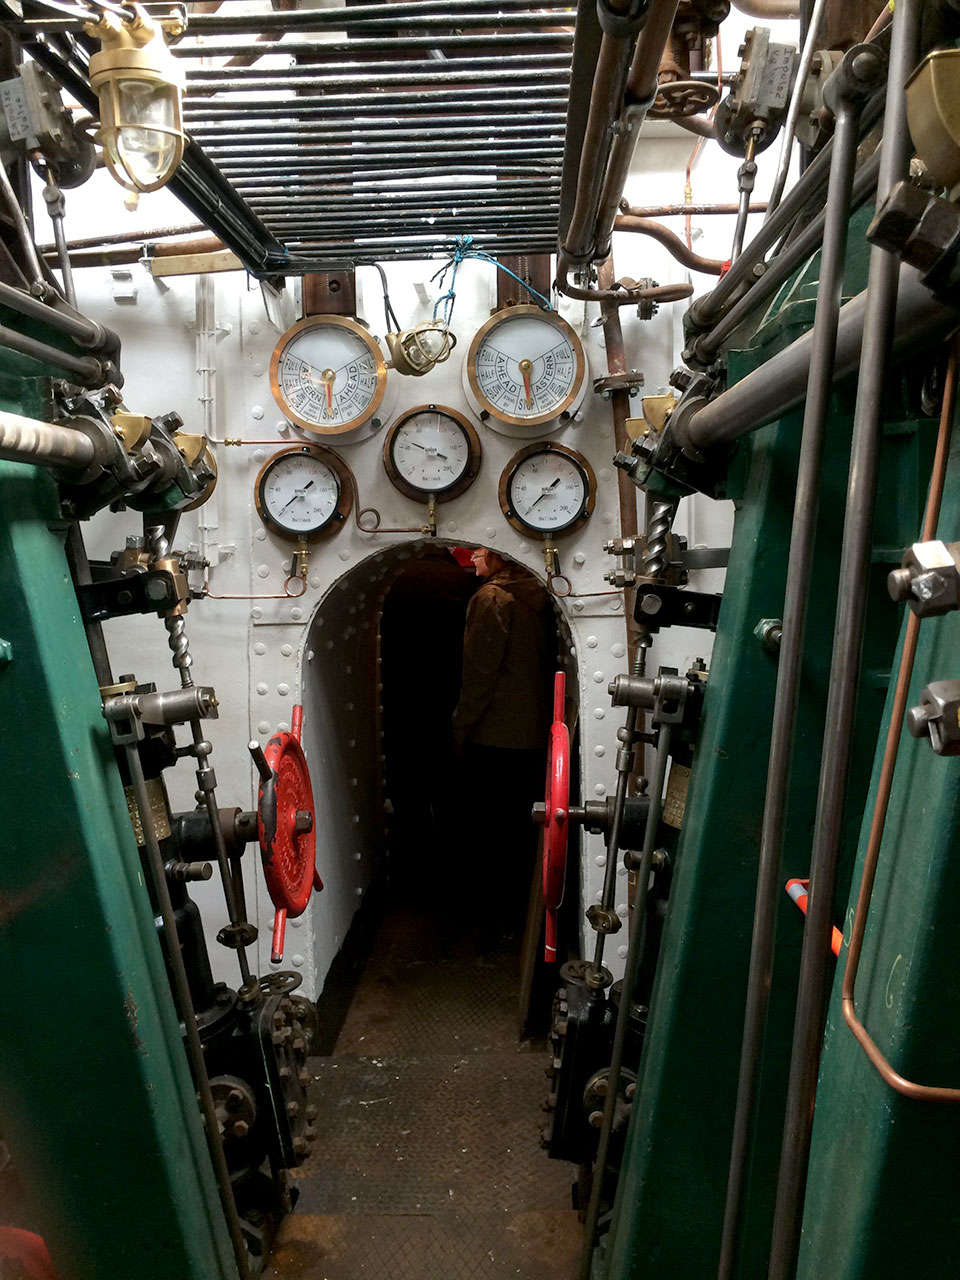 The Danny's Engine Room - Not Made For Social Distancing!